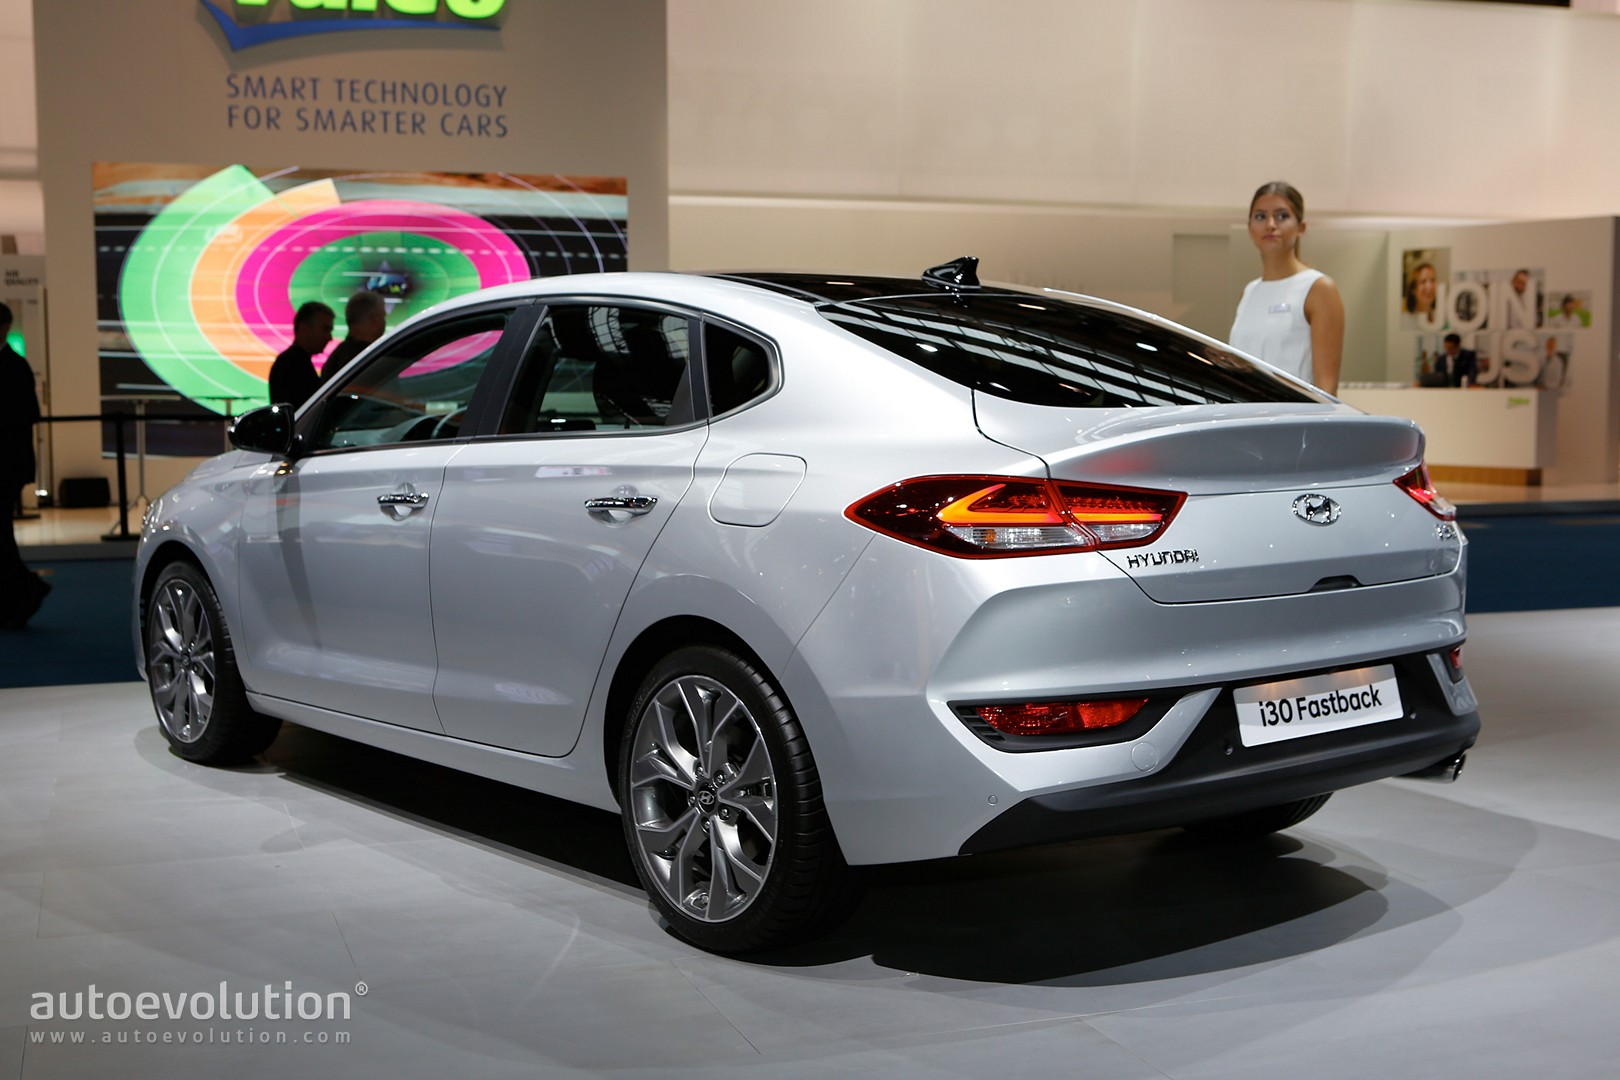 Hyundai I30 Fastback Is Not A Mustang In Frankfurt